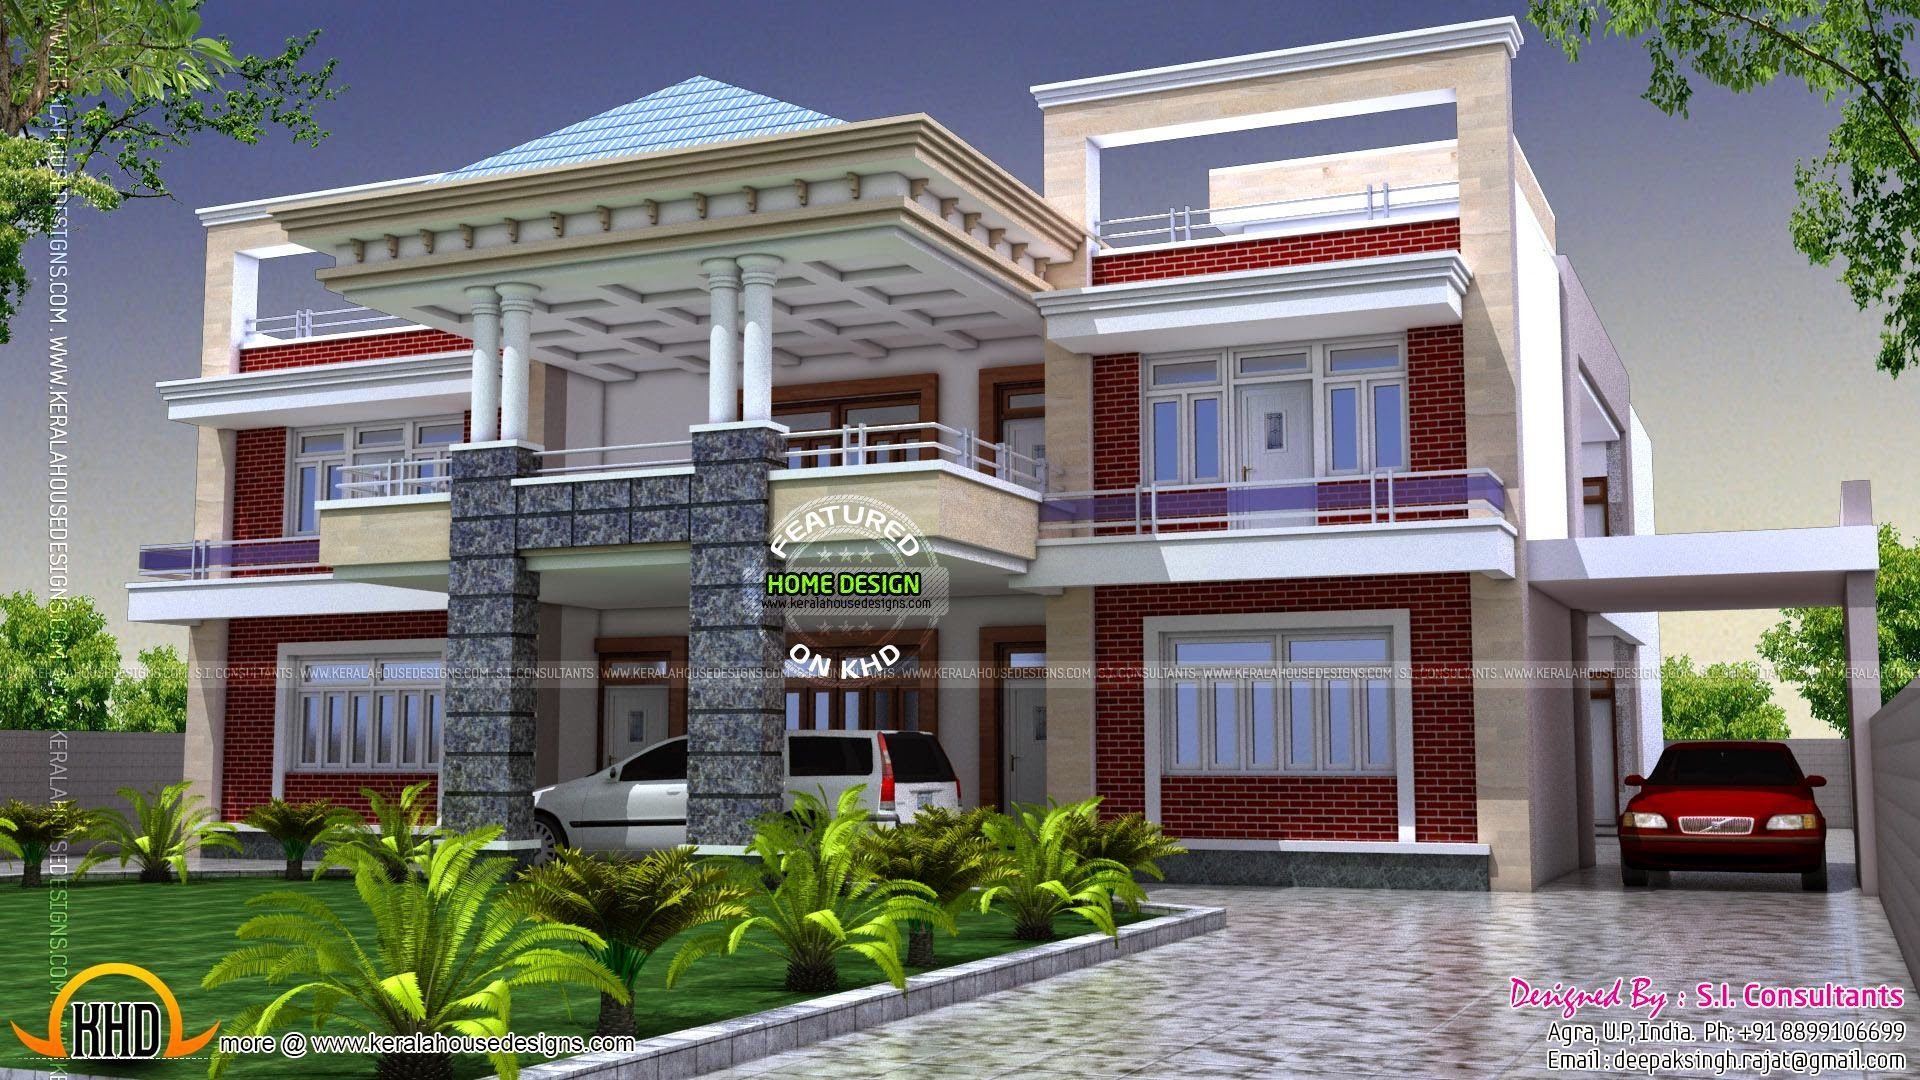 Sample House Designs Indian Style